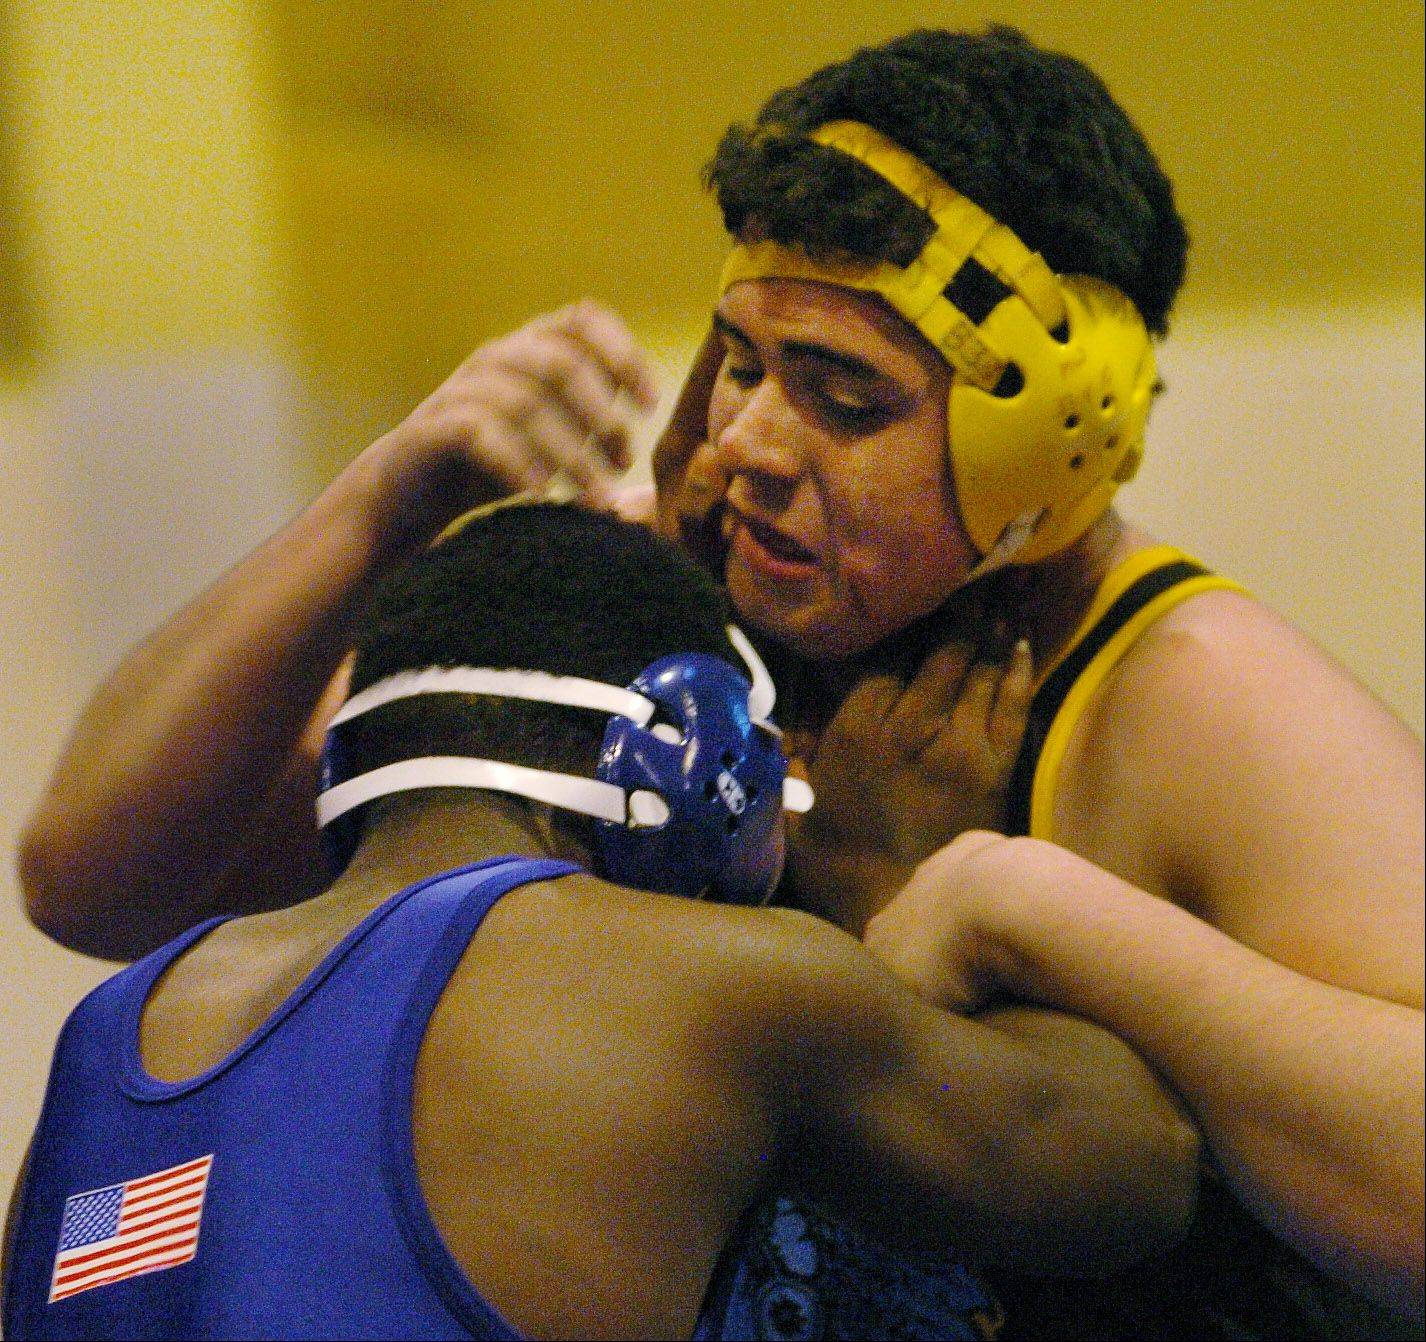 Jamie Marquez of Maine West, right, falls in his match to Sandburg's Robert Boyde in the 285-pound class Saturday at the Wheeling invite.